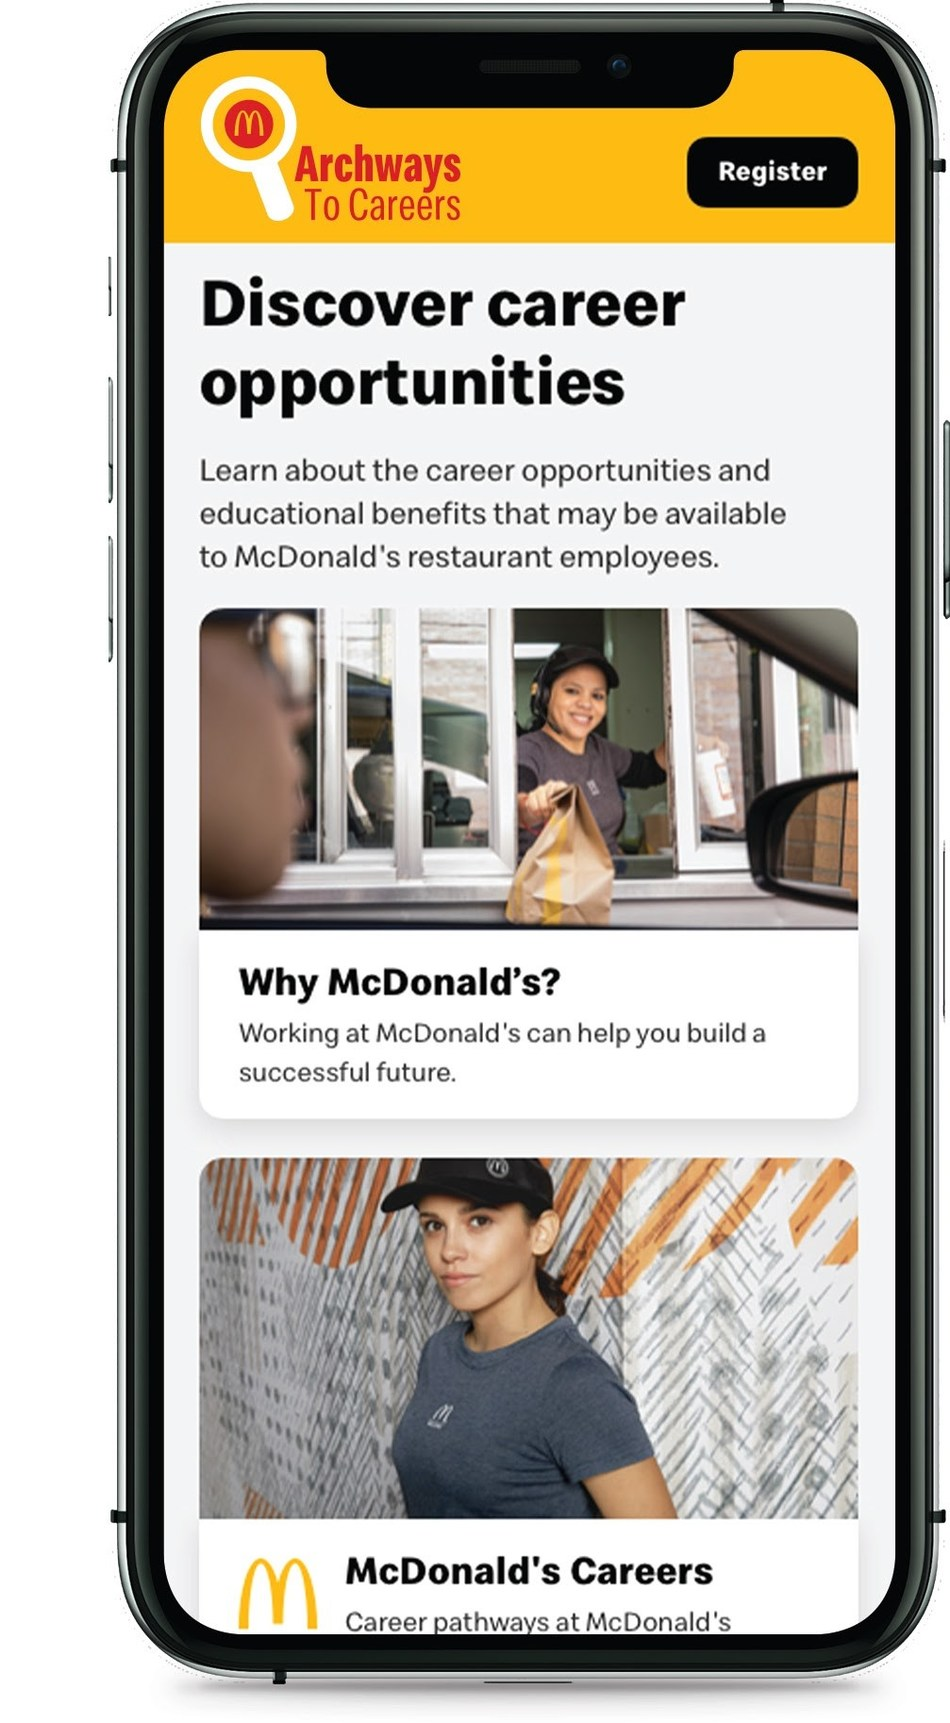 Archways to Careers App